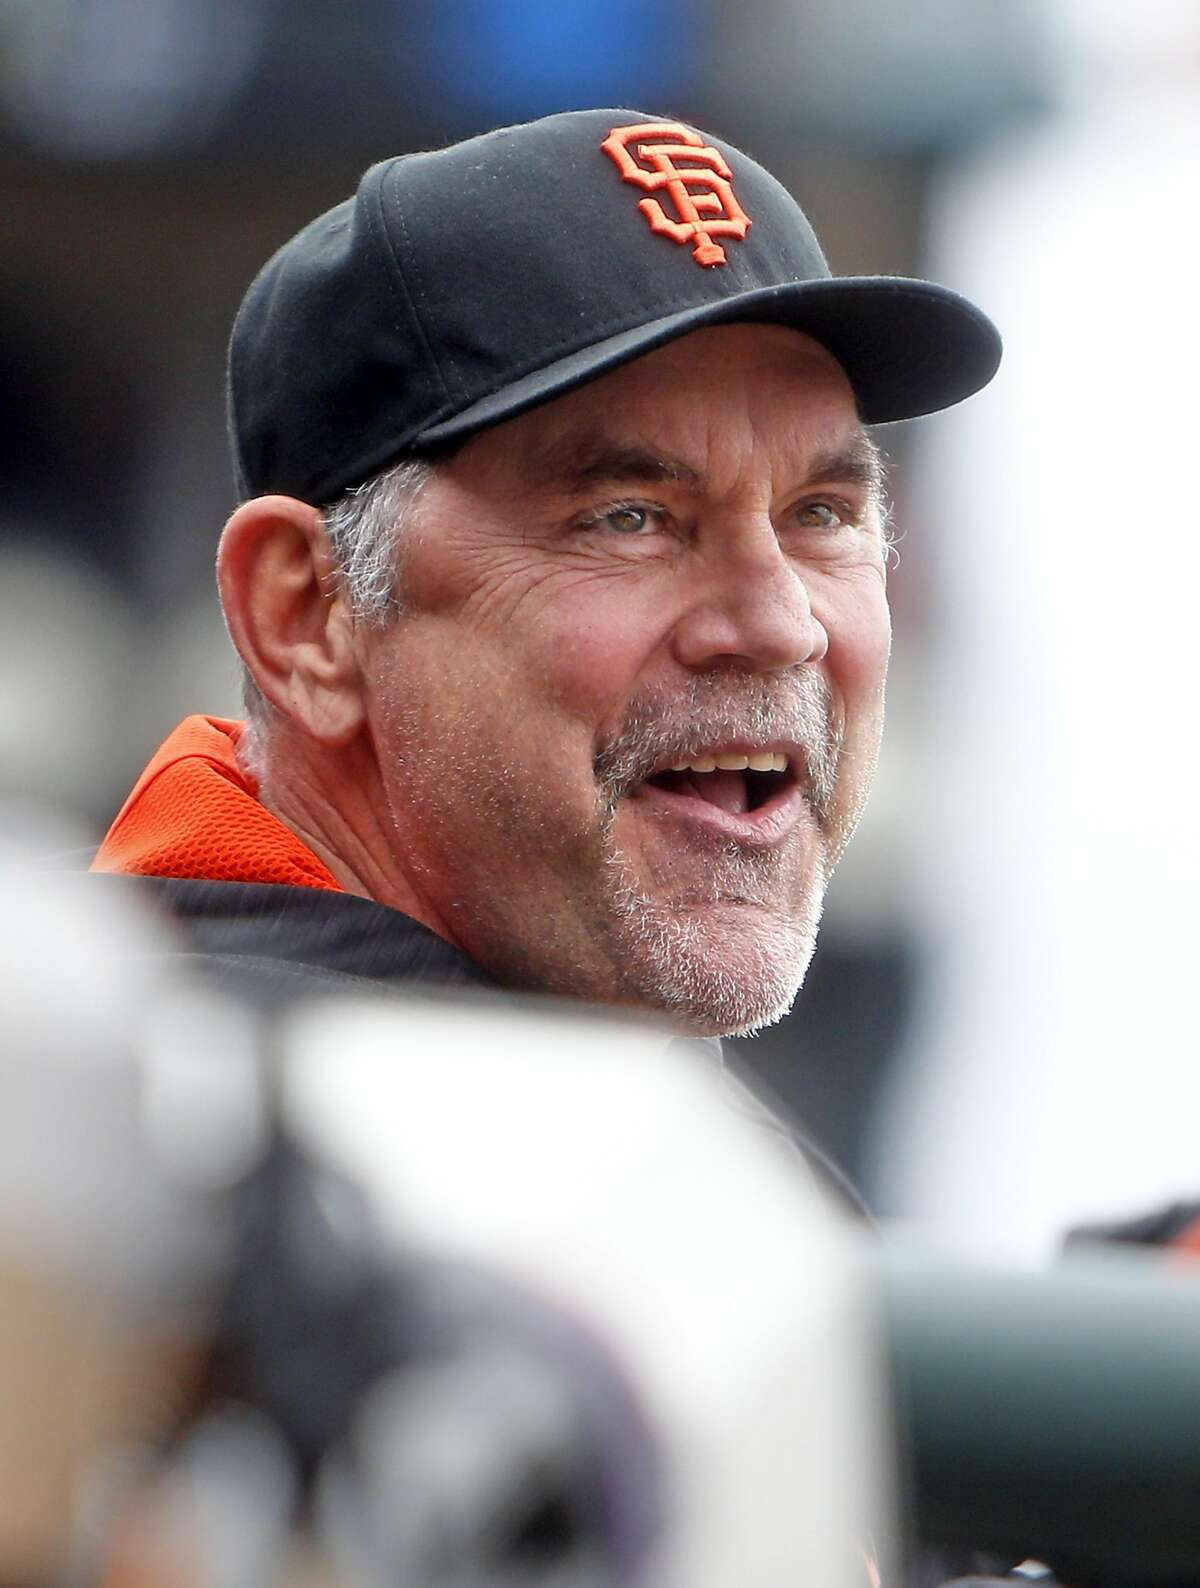 San Francisco Giants' Bruce Bochy reacts to Angel Pagan's 4th inning home run against Los Angeles Dodgers during MLB game at AT&T Park in San Francisco, Calif., on Sunday, April 10, 2016.